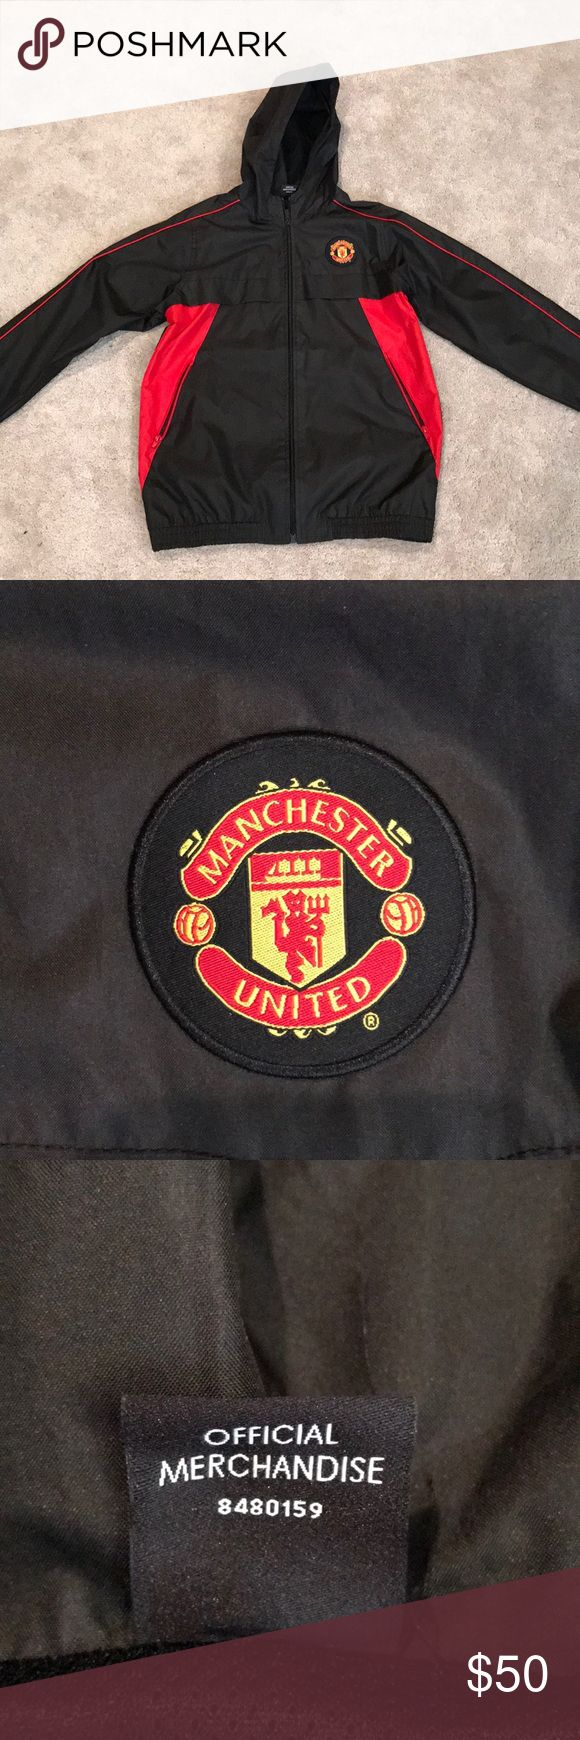 Worn once, Manchester United kids jacket Purchase in Manchester, England at a Manchester United soccer game. Authentic kids jacket with Man United crest. Only worn once so in excellent condition. Perfect for a soccer ⚽️ lover!! Kids size XL  Has two front zip pockets. Raincoat/ windbreaker  fabric Jackets & Coats